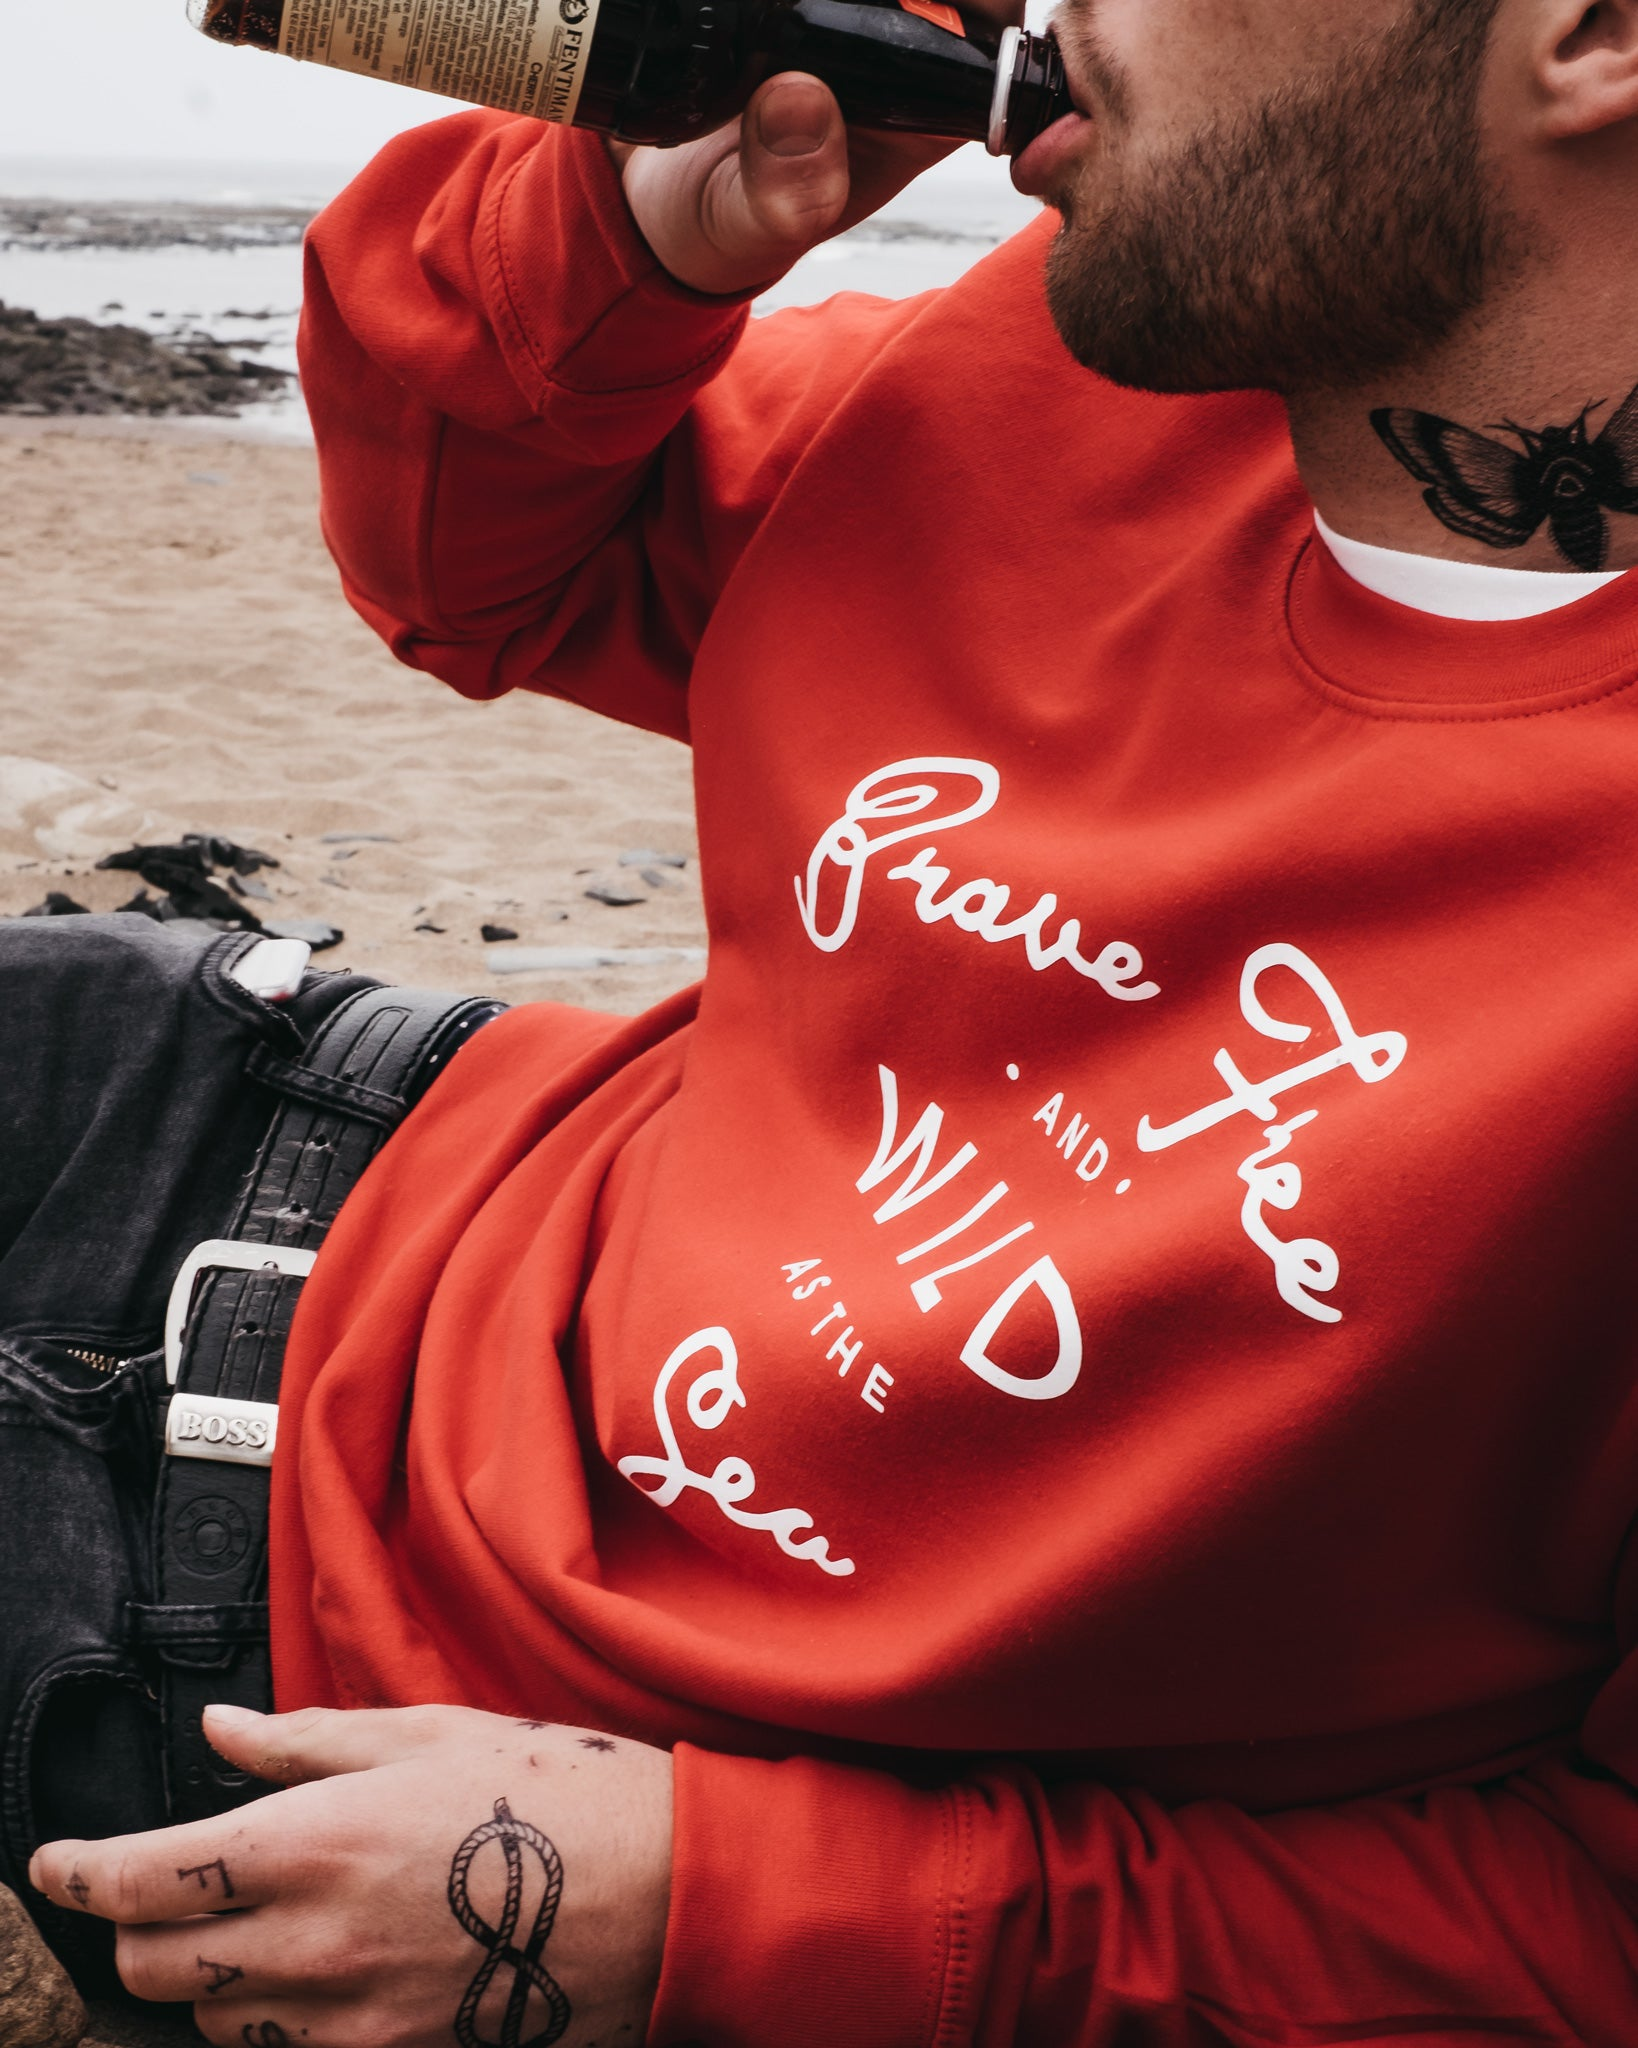 Red Brave Free & Wild As The Sea sweatshirt by Art Disco